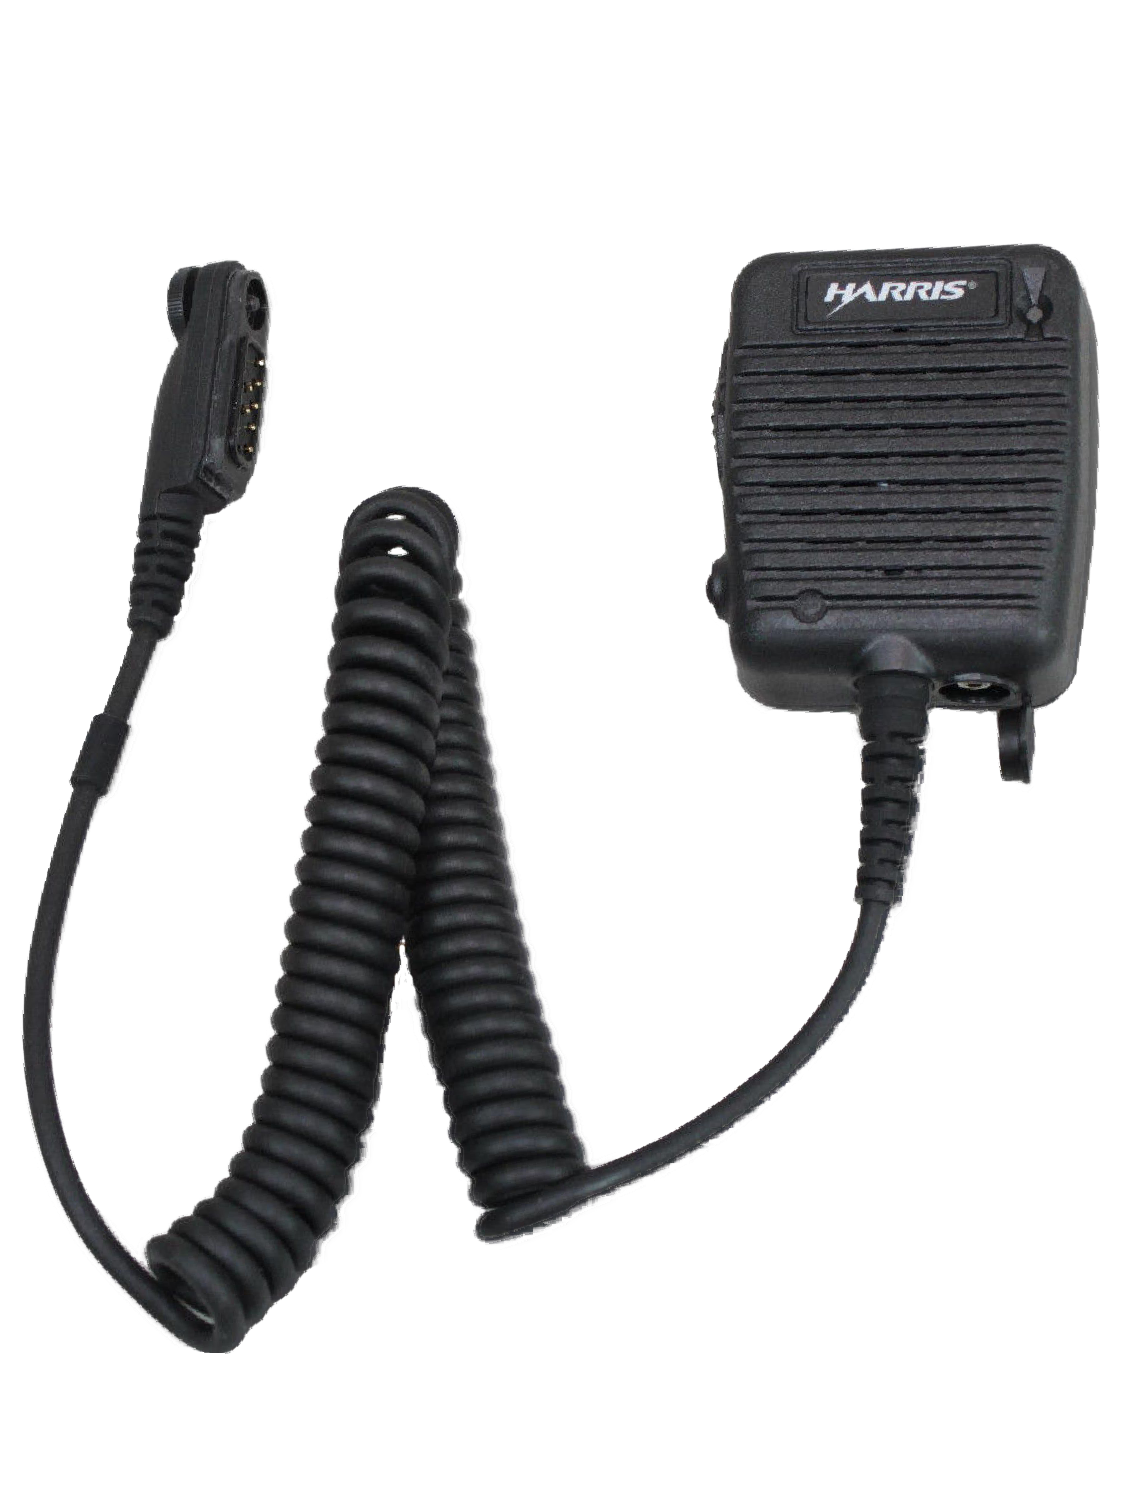 Harris 12082-0600-01 Earpieces